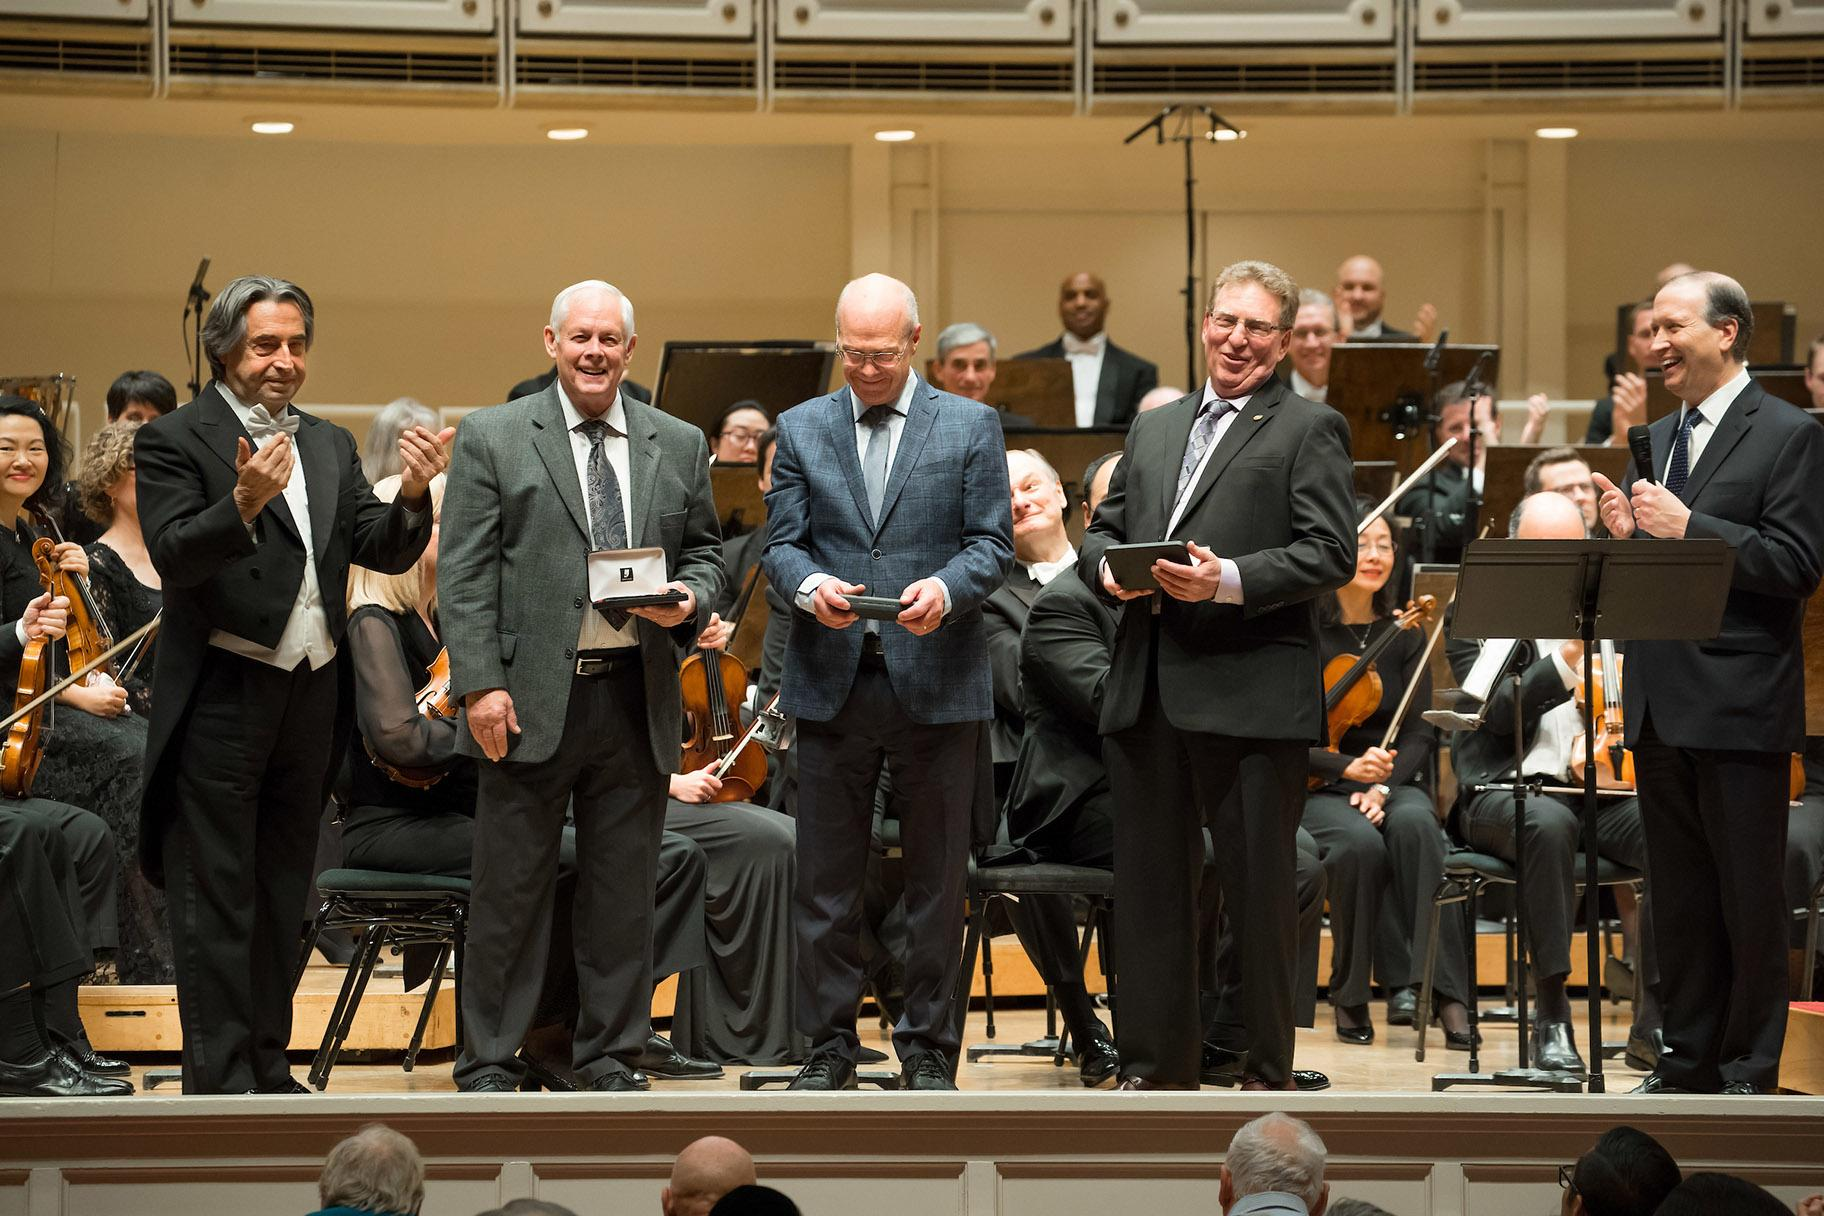 Zell Music Director Riccardo Muti (left) and Chicago Symphony Orchestra President Jeff Alexander (far right) present Theodore Thomas Medallions to recognize retiring musicians of the CSO, Roger Cline, bass, John Bartholomew, viola, and Daniel Orbach, viola at Symphony Center on Nov. 7, 2019. (Credit: Anne Ryan)